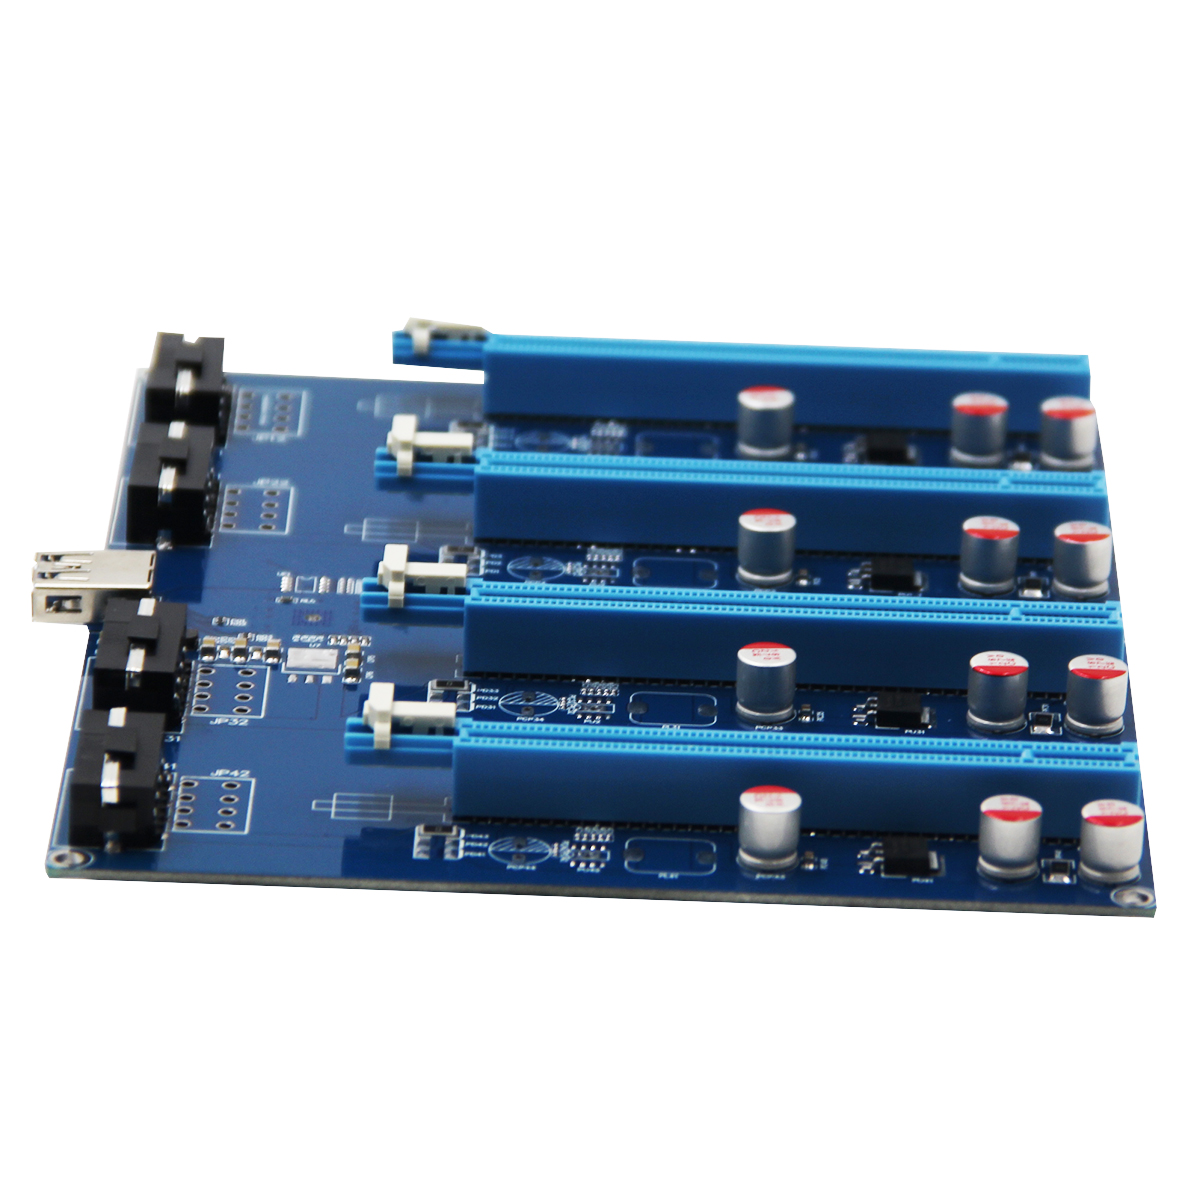 PCI-E 1X 1 to 4 Riser Extension Card - Click Image to Close